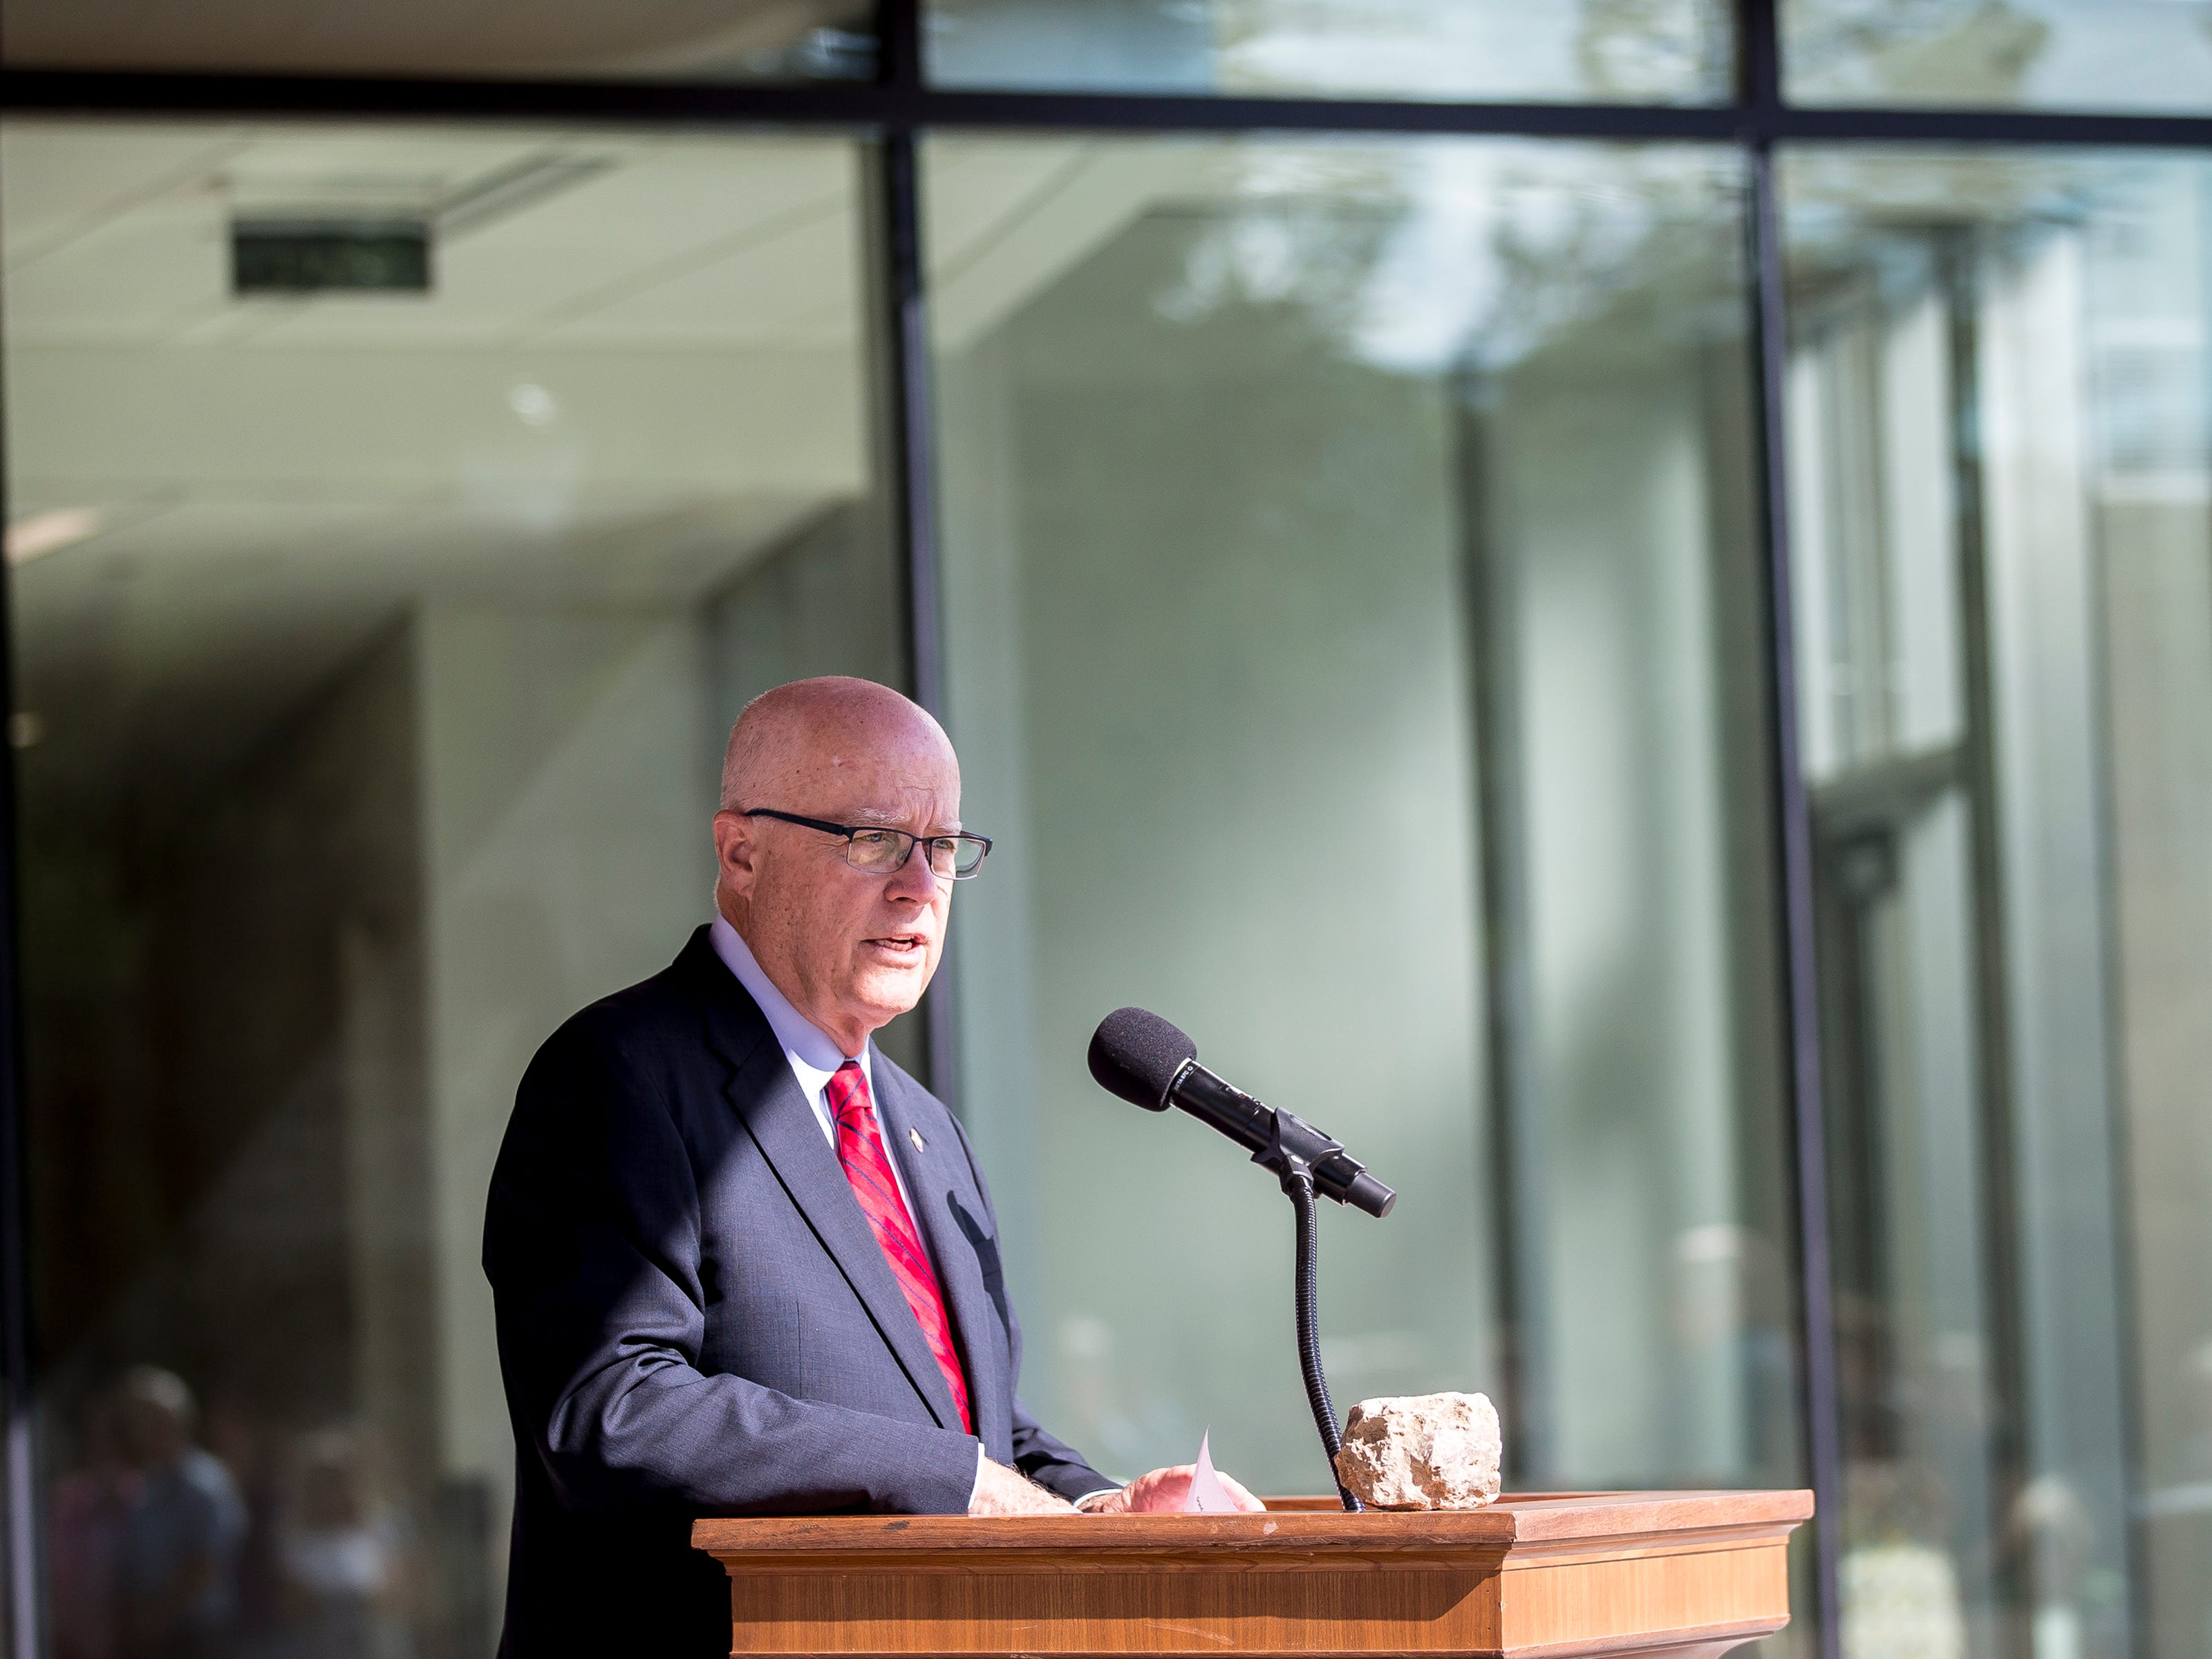 Chancellor Bernie Patterson speaks during the opening ceremony for the Chemistry Biology Building at the University of Wisconsin-Stevens Point in Stevens Point, Wis., Sept. 14, 2018.